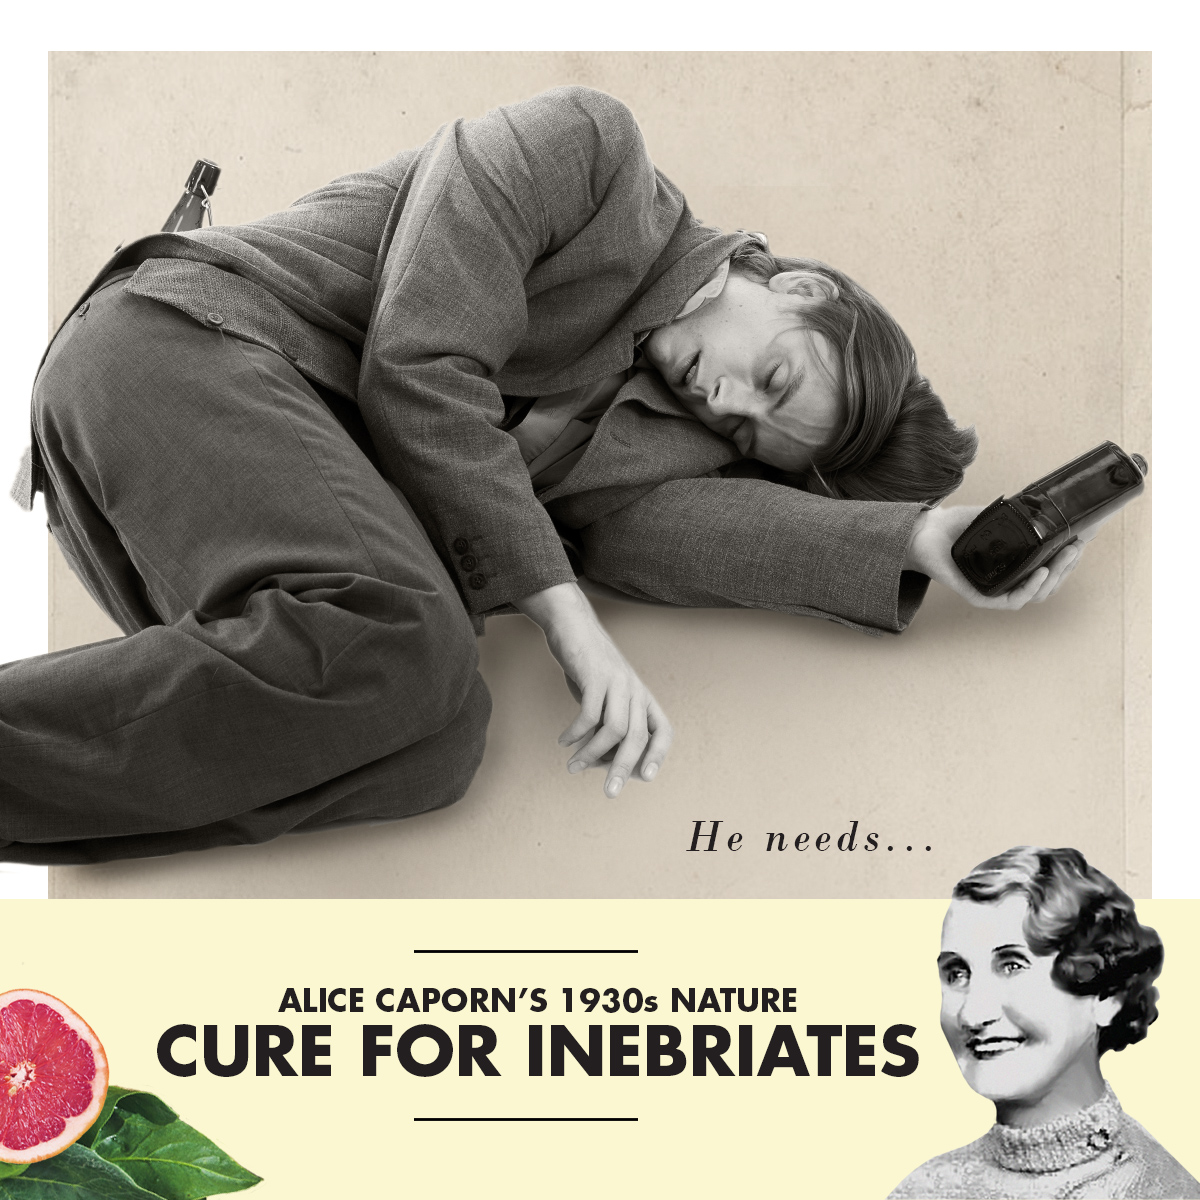 Alice Caporn cure for inebriates_1200x1200 4 (2).jpg